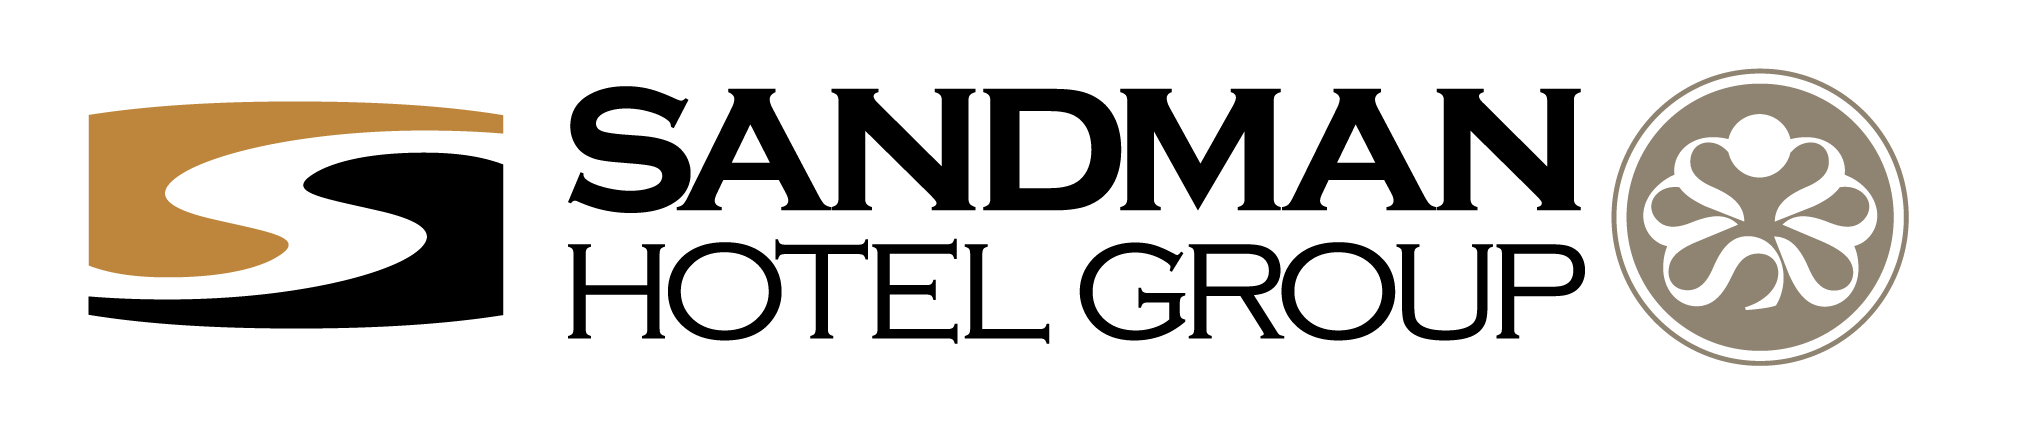 Sandman Hotel Group Colour Logo